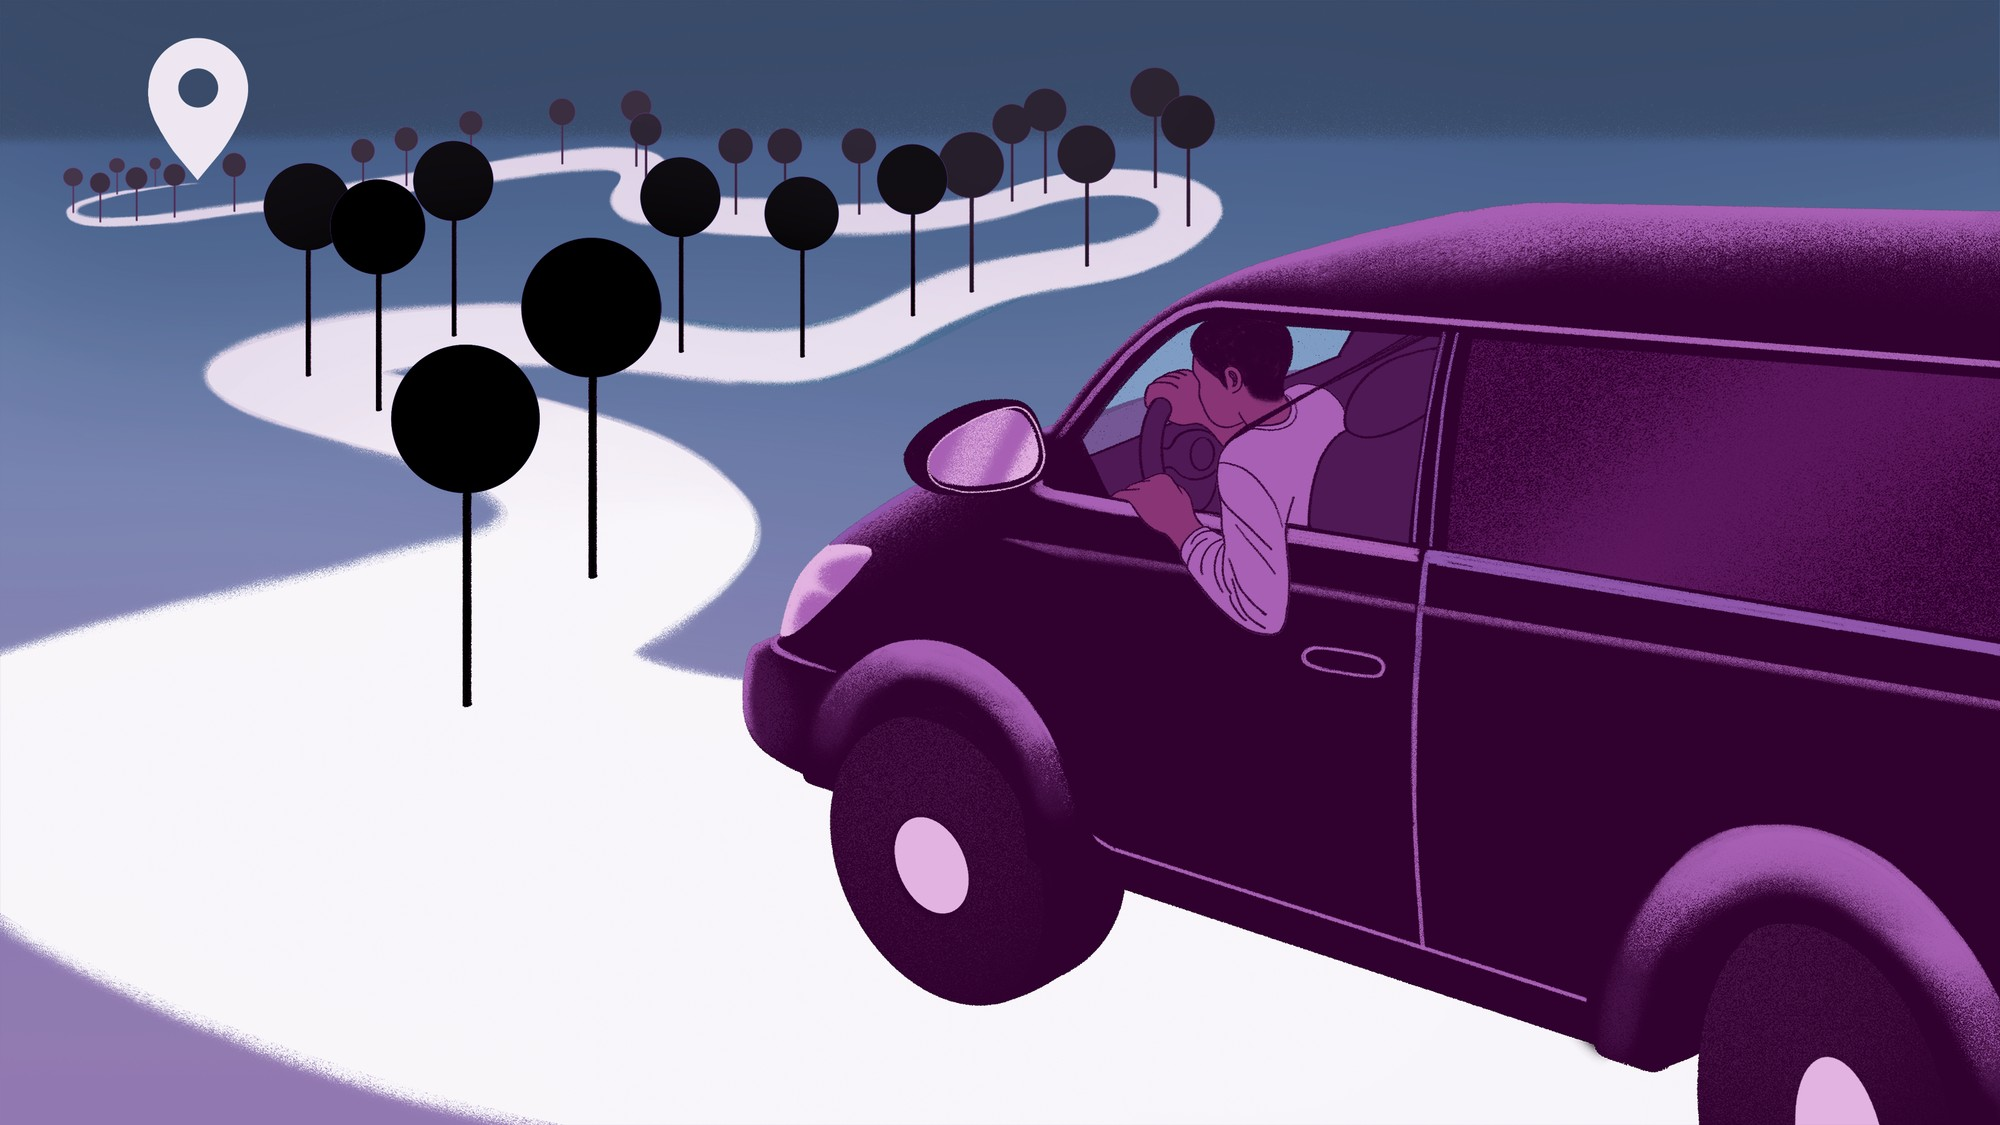 Can a Ridehailing App Be Ethical? - VICE